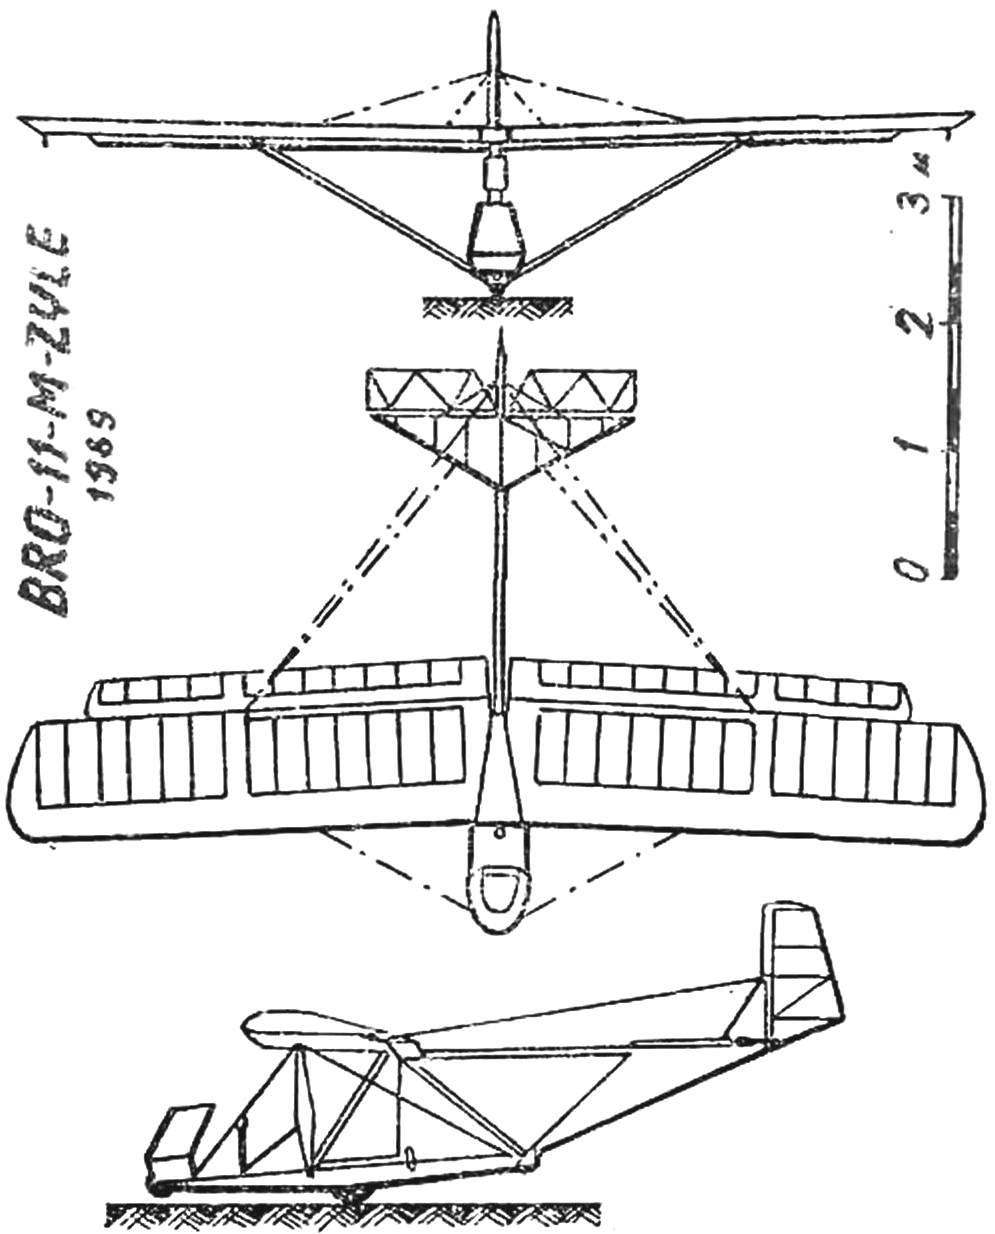 Fig. 6. Training glider design B. Oskinis. BRO-11-M